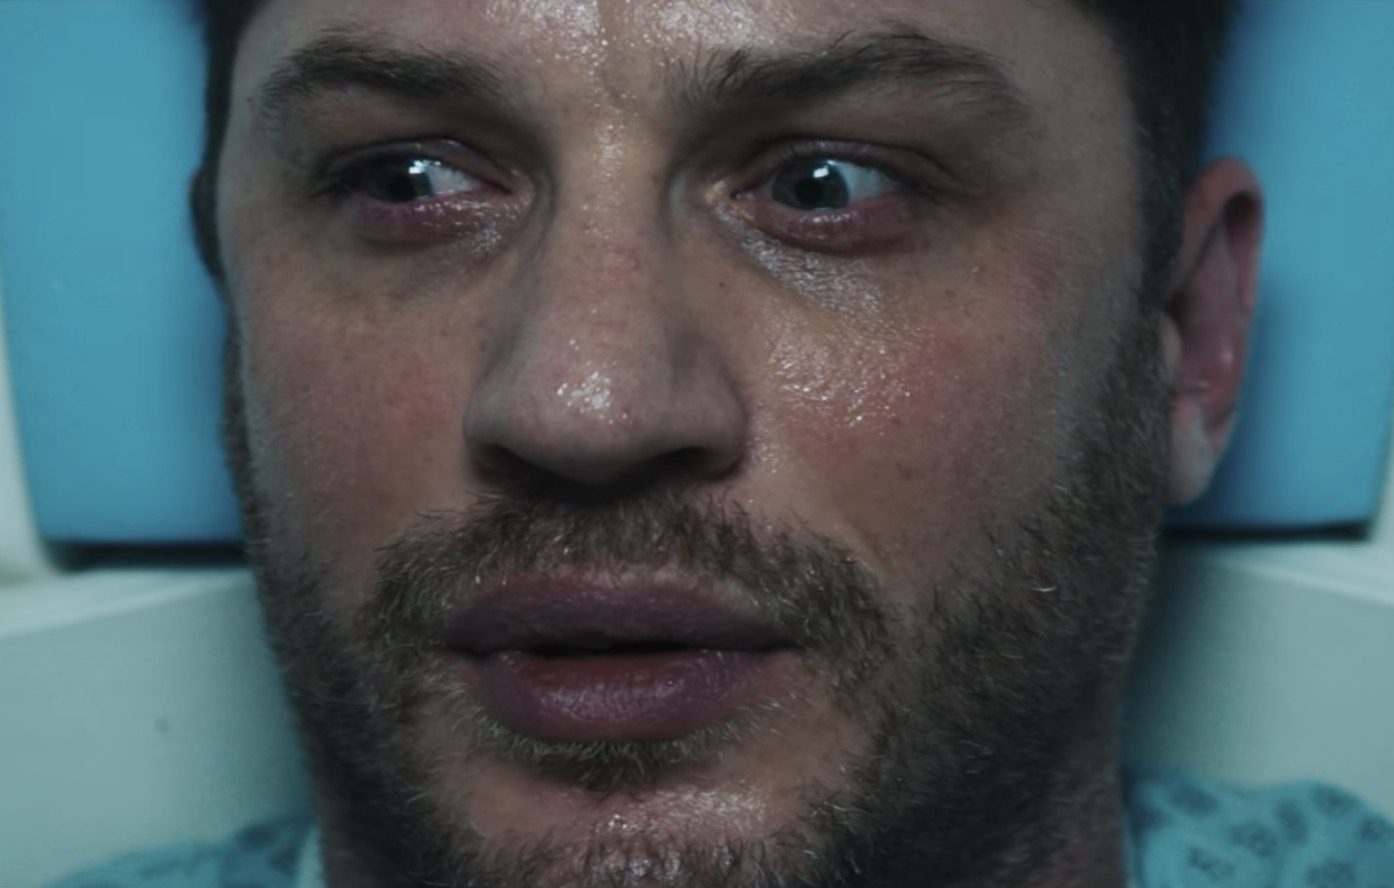 'Venom' Teaser Trailer, Featuring Tom Hardy, Released